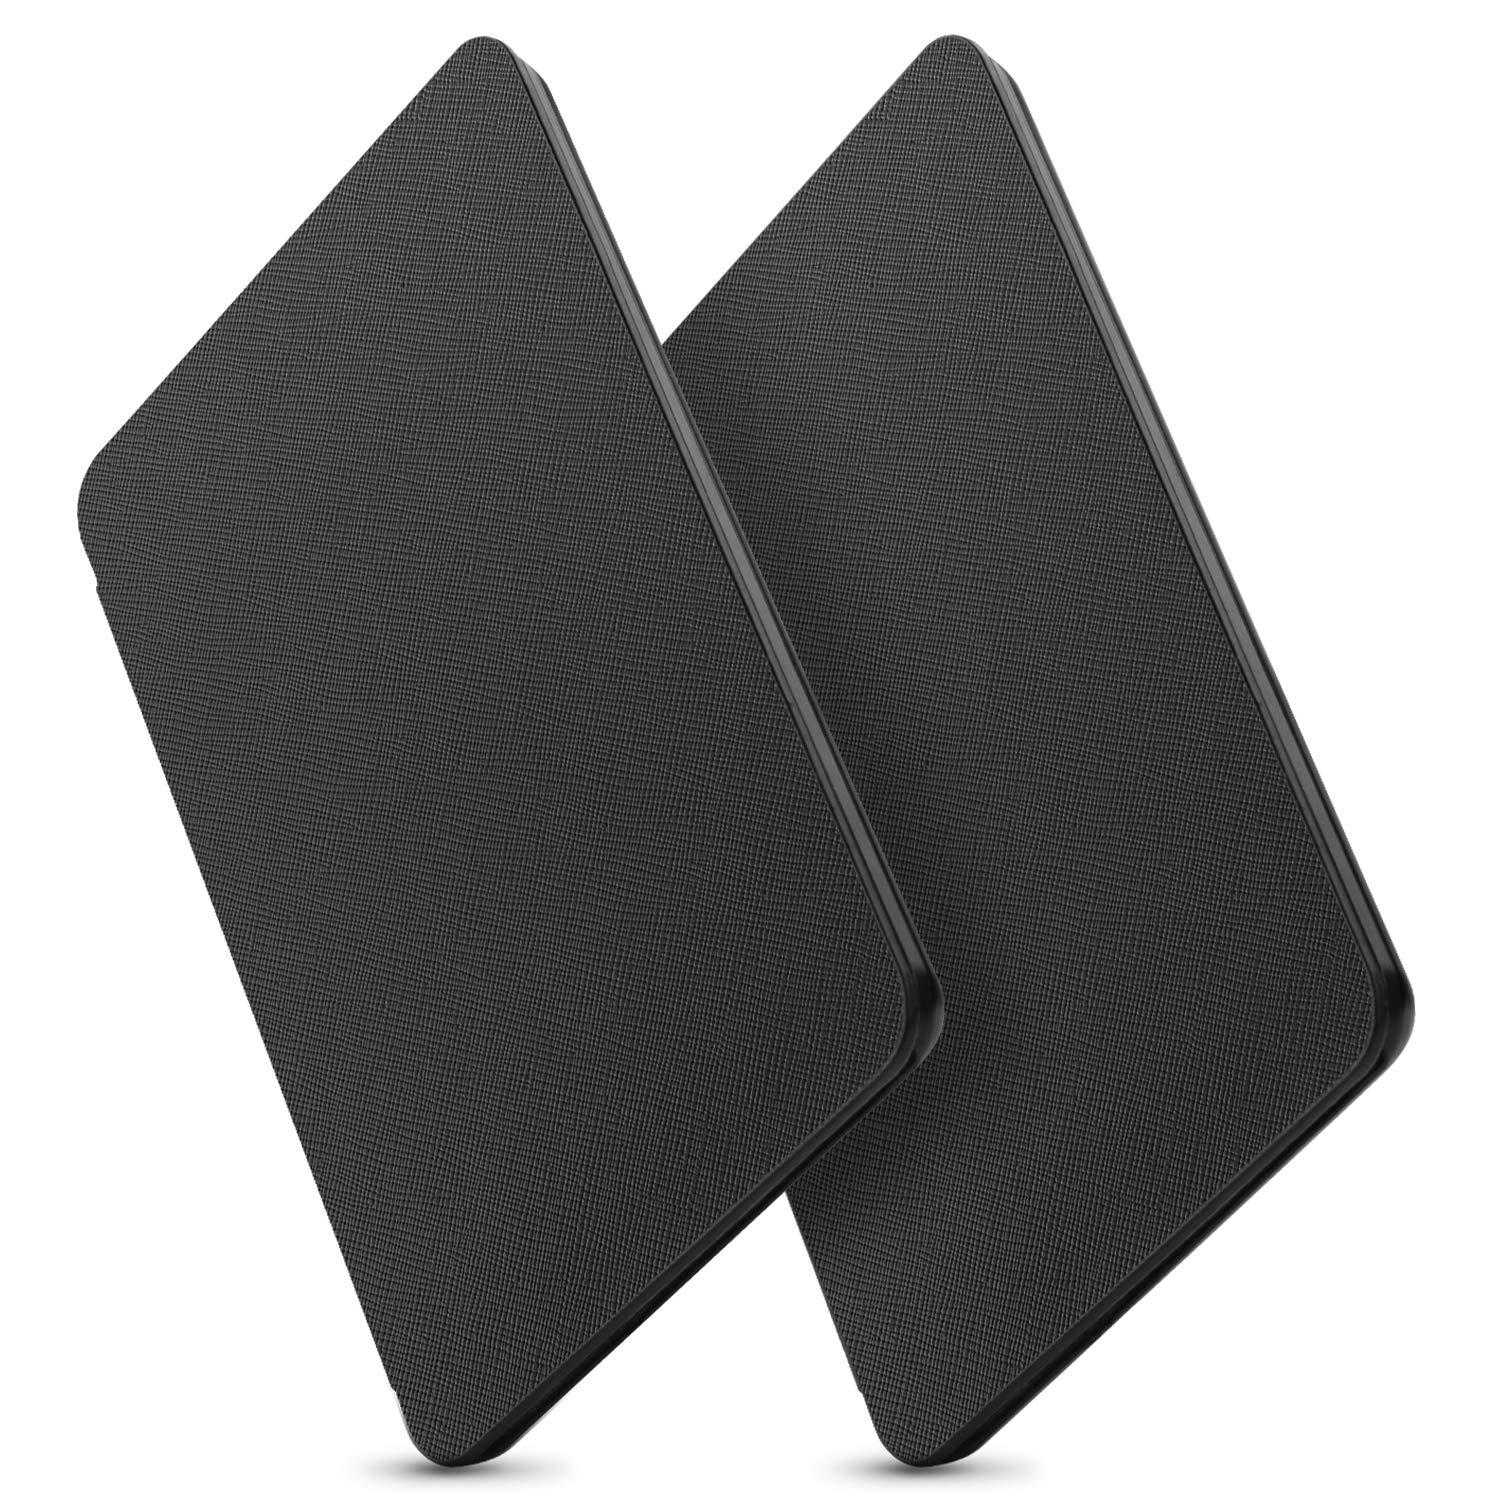 OMOTON Kindle Paperwhite Case (10th Generation-2018) 2 Pack, Smart Shell Cover with Auto Sleep Wake Feature for Kindle Paperwhite 10th Gen 2018 Released,Black+Black